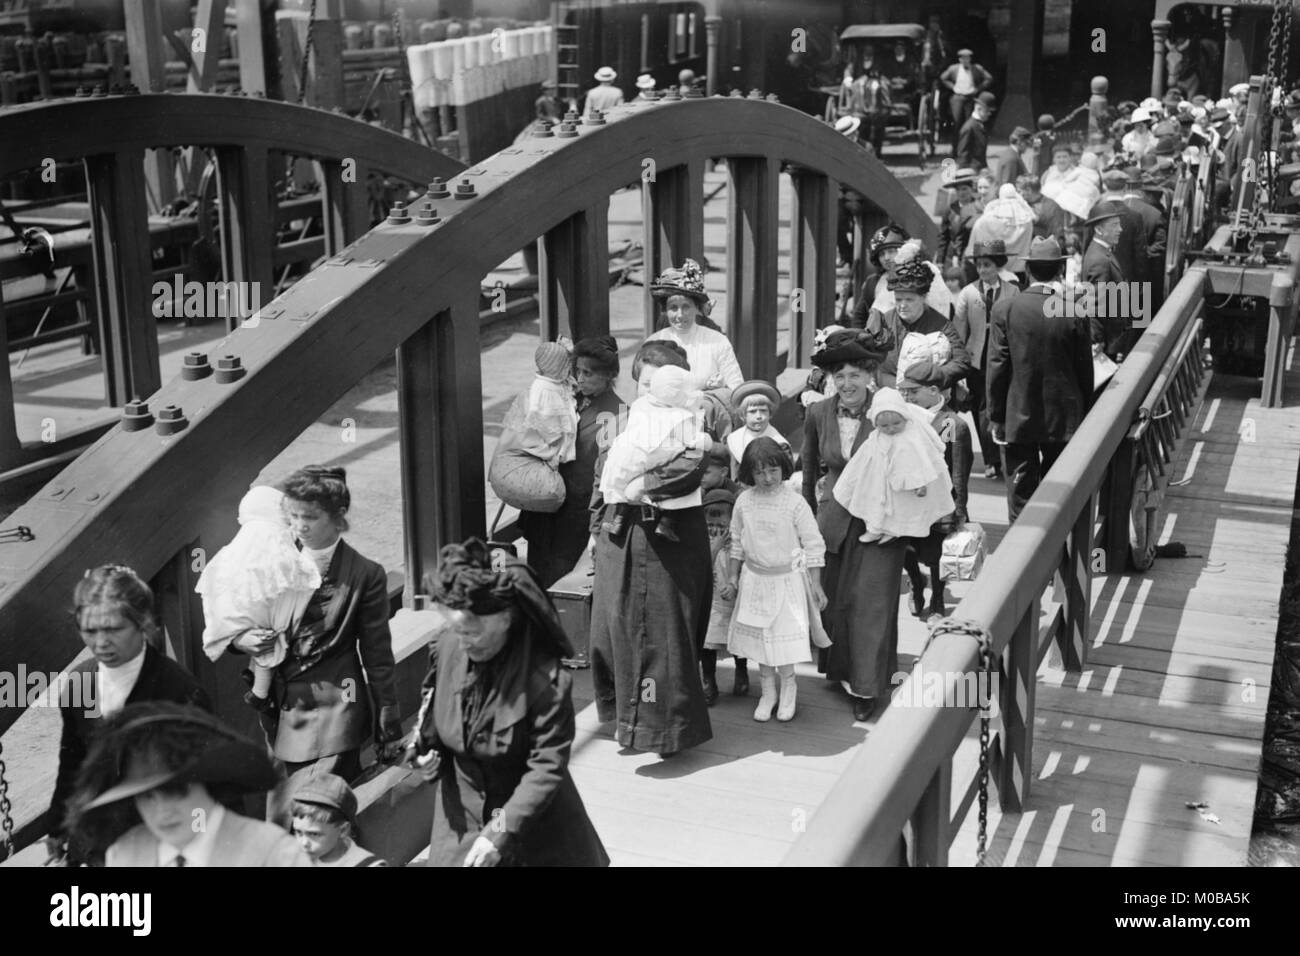 Boarding the Ferry in Manhattan - Stock Image